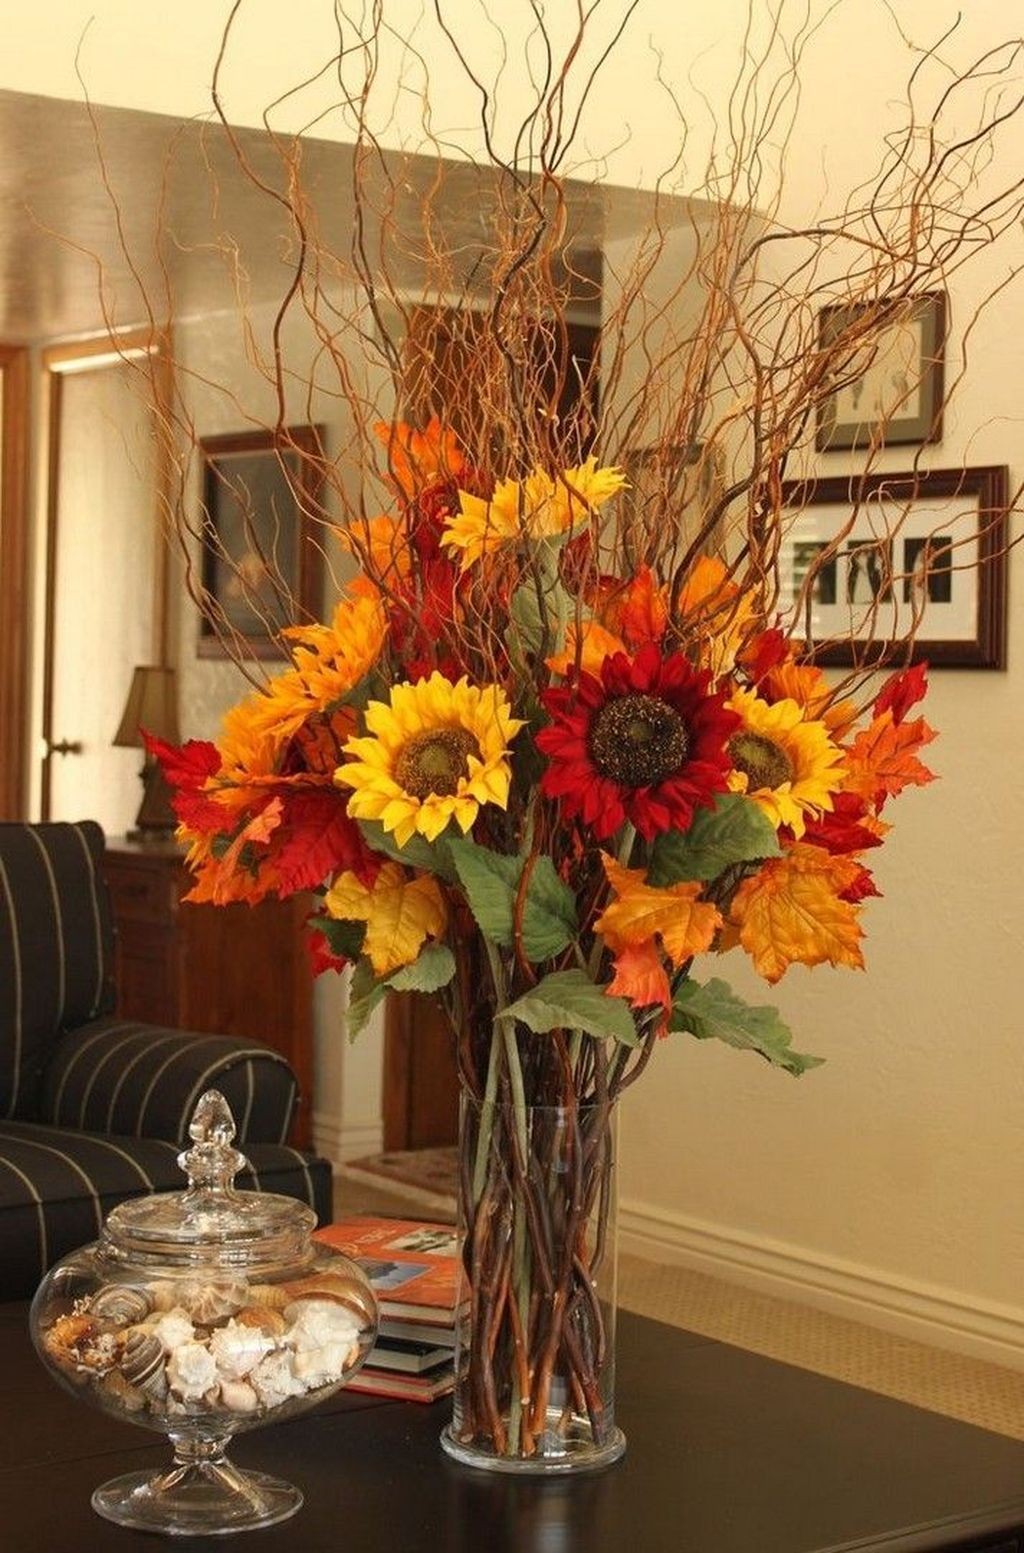 32 Stunning DIY Fall Home Decor Ideas #falldecorideasforthehome